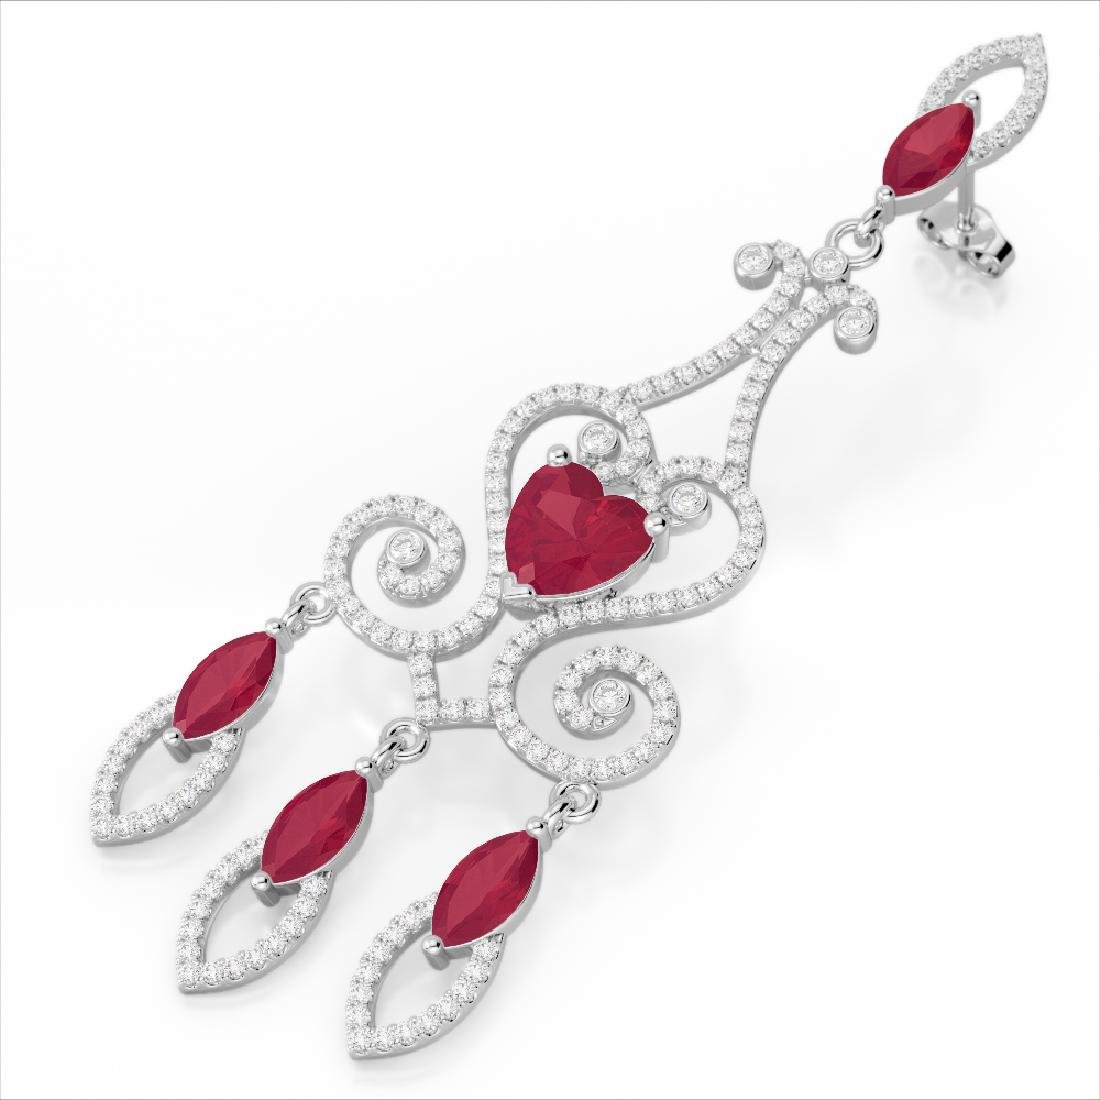 11 CTW Ruby & Micro Pave VS/SI Diamond Earrings 14K